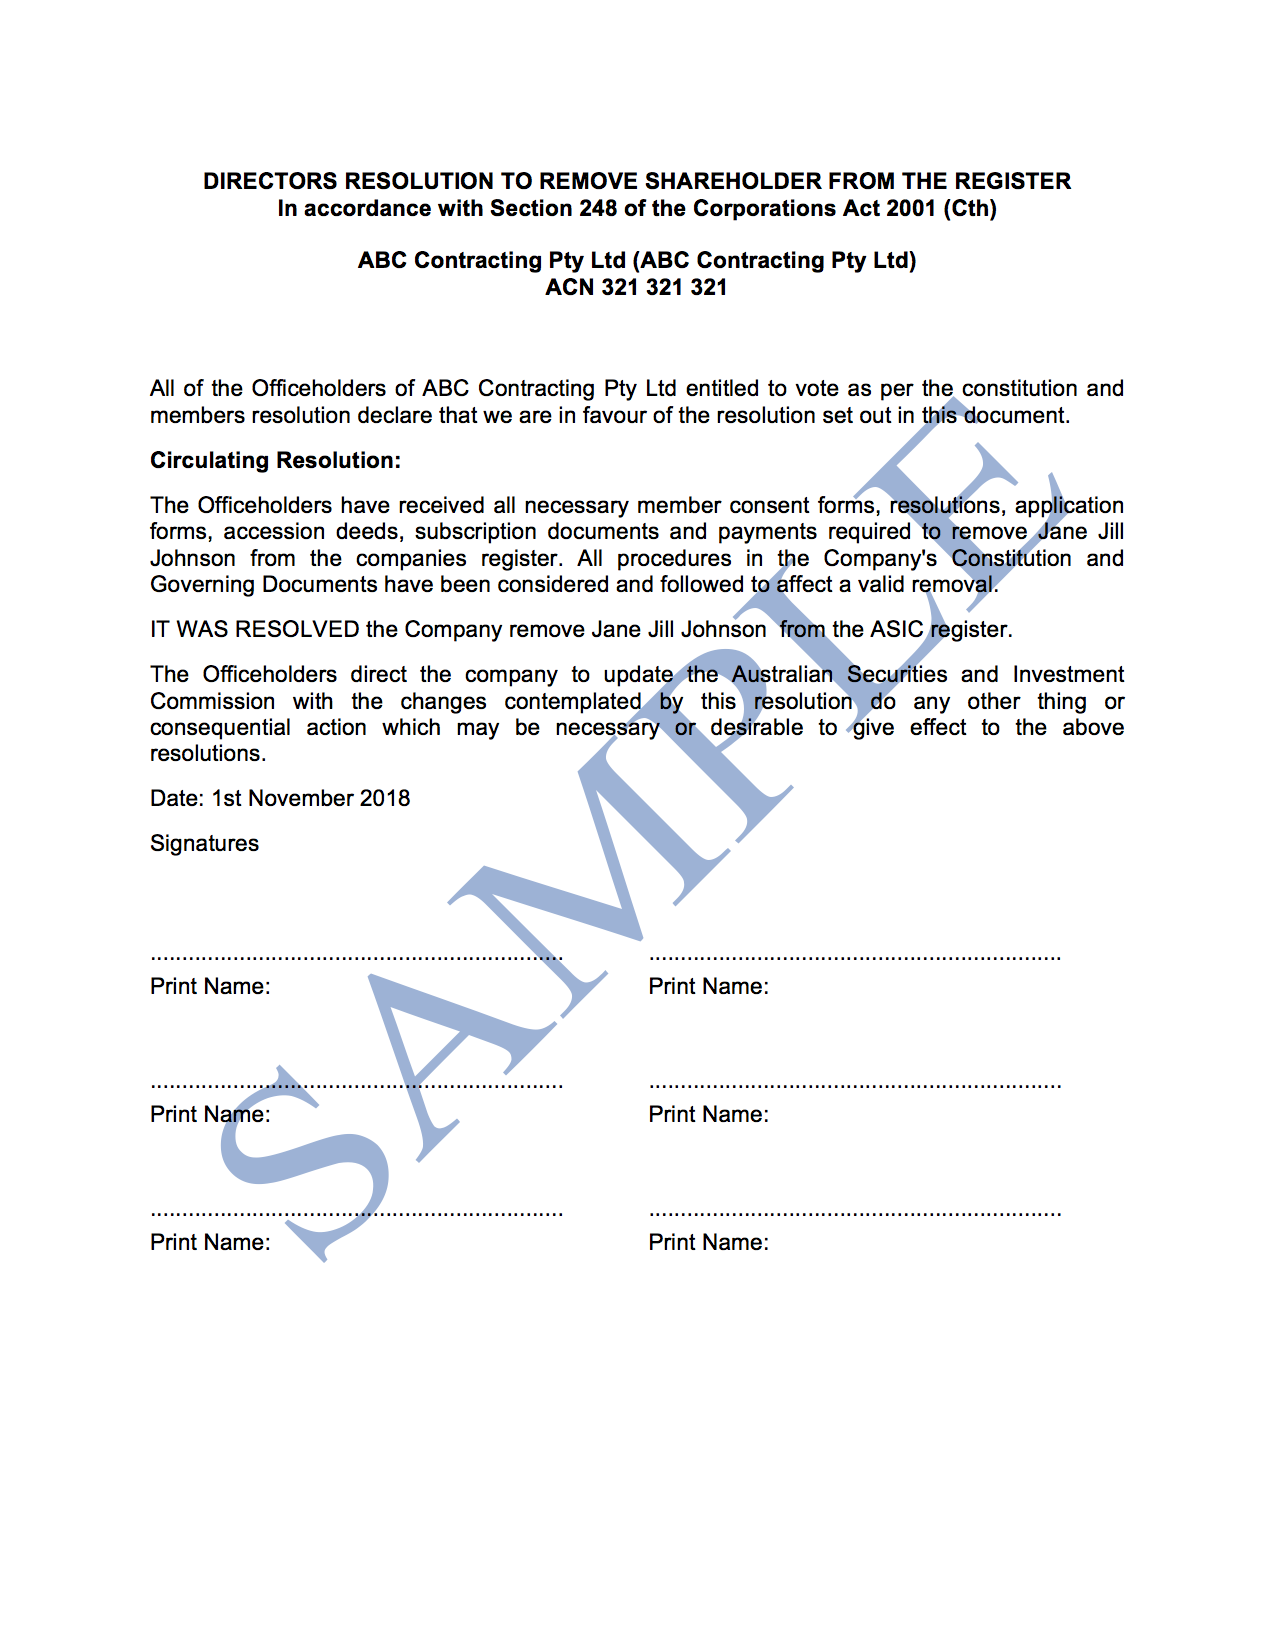 Directors Resolution to Remove Shareholder from the Register